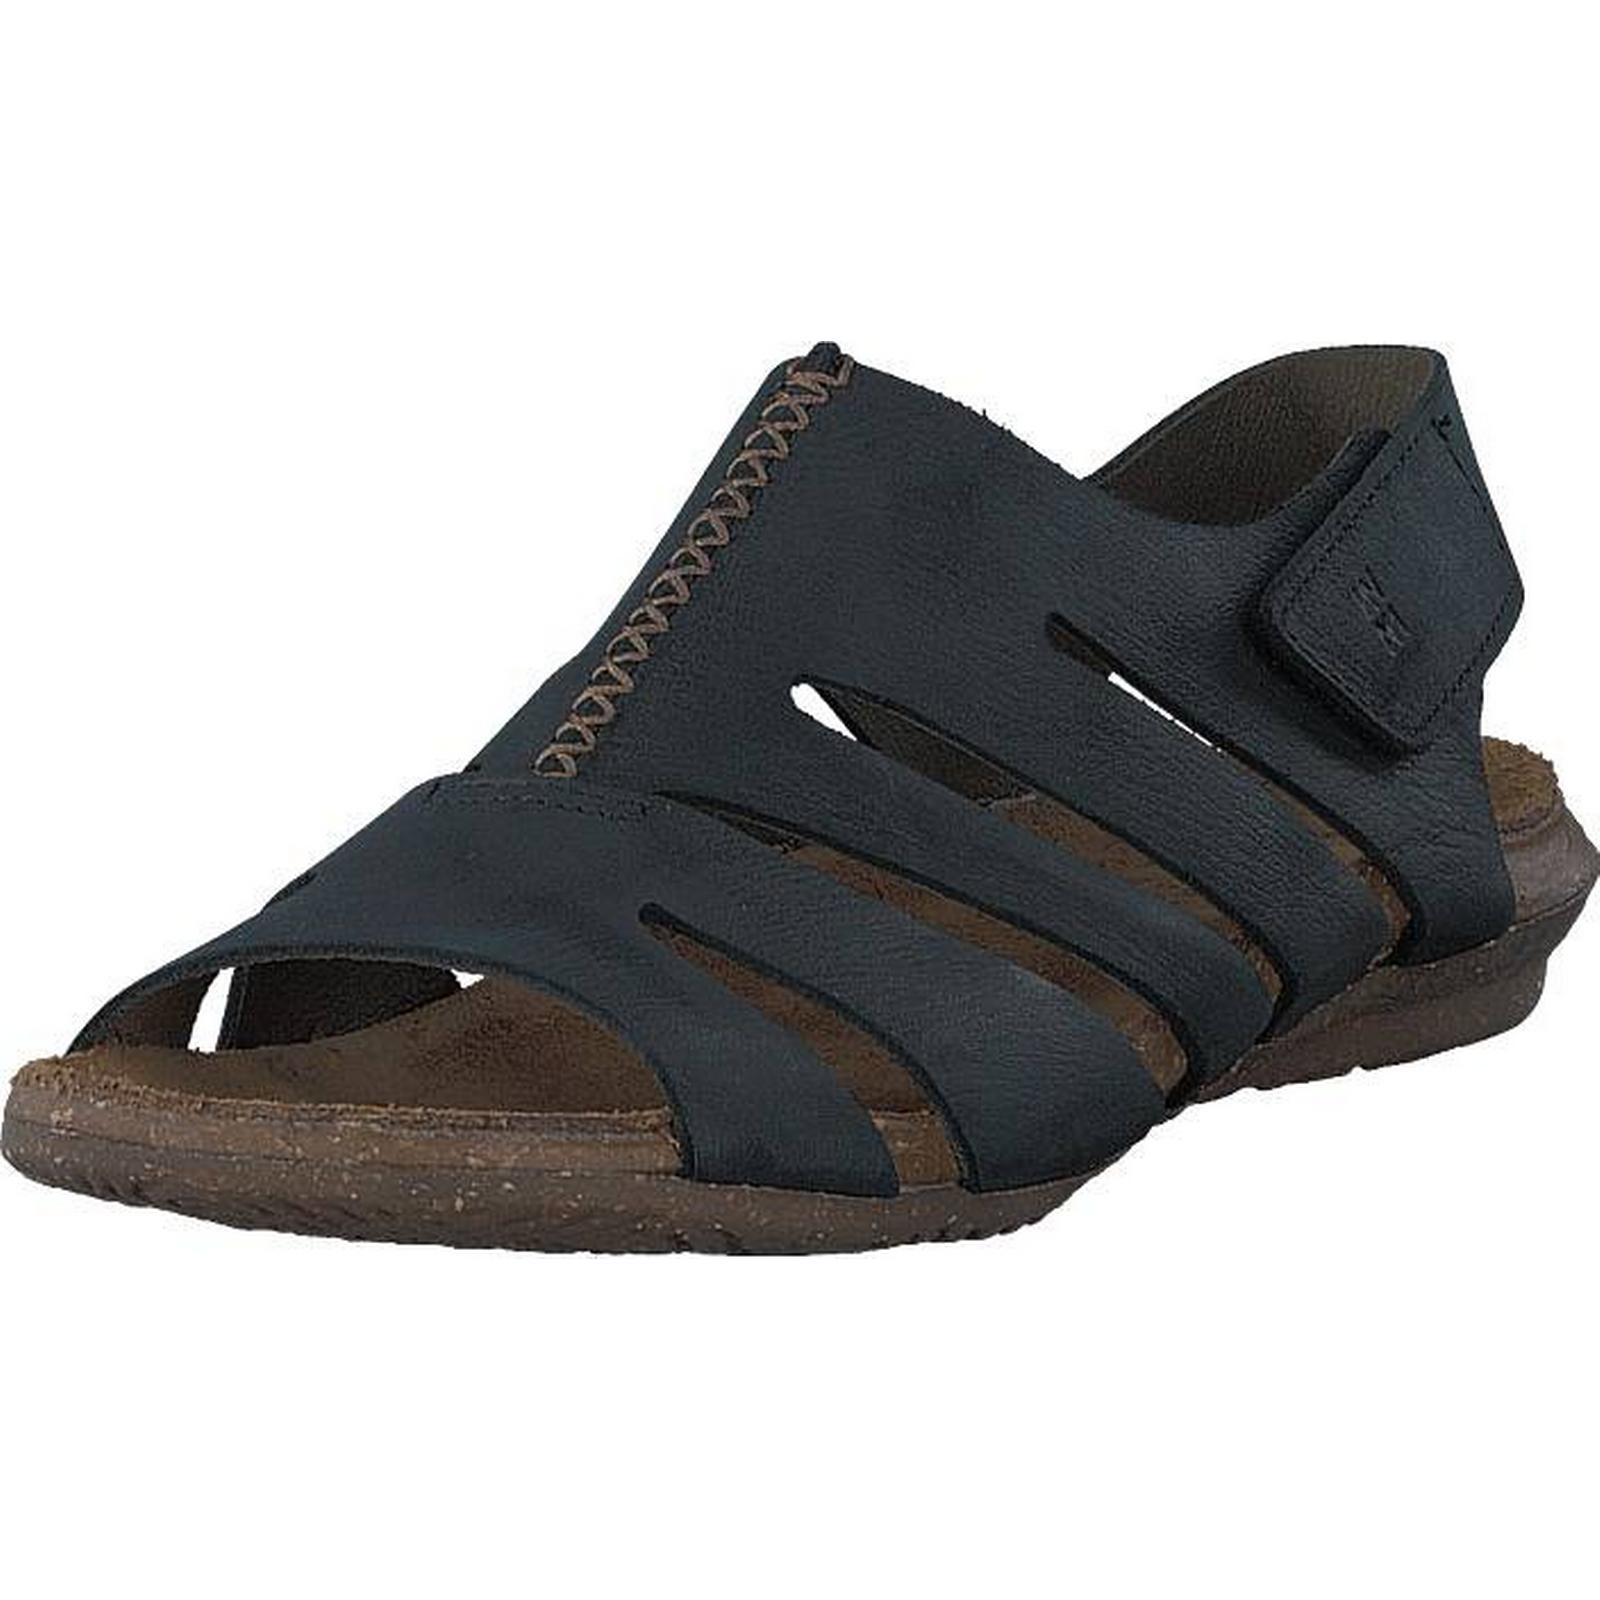 El Naturalista Wakataua Black, Shoes, Sandals & Strappy Slippers, Strappy & Sandals, Black, Female, 36 5822ba